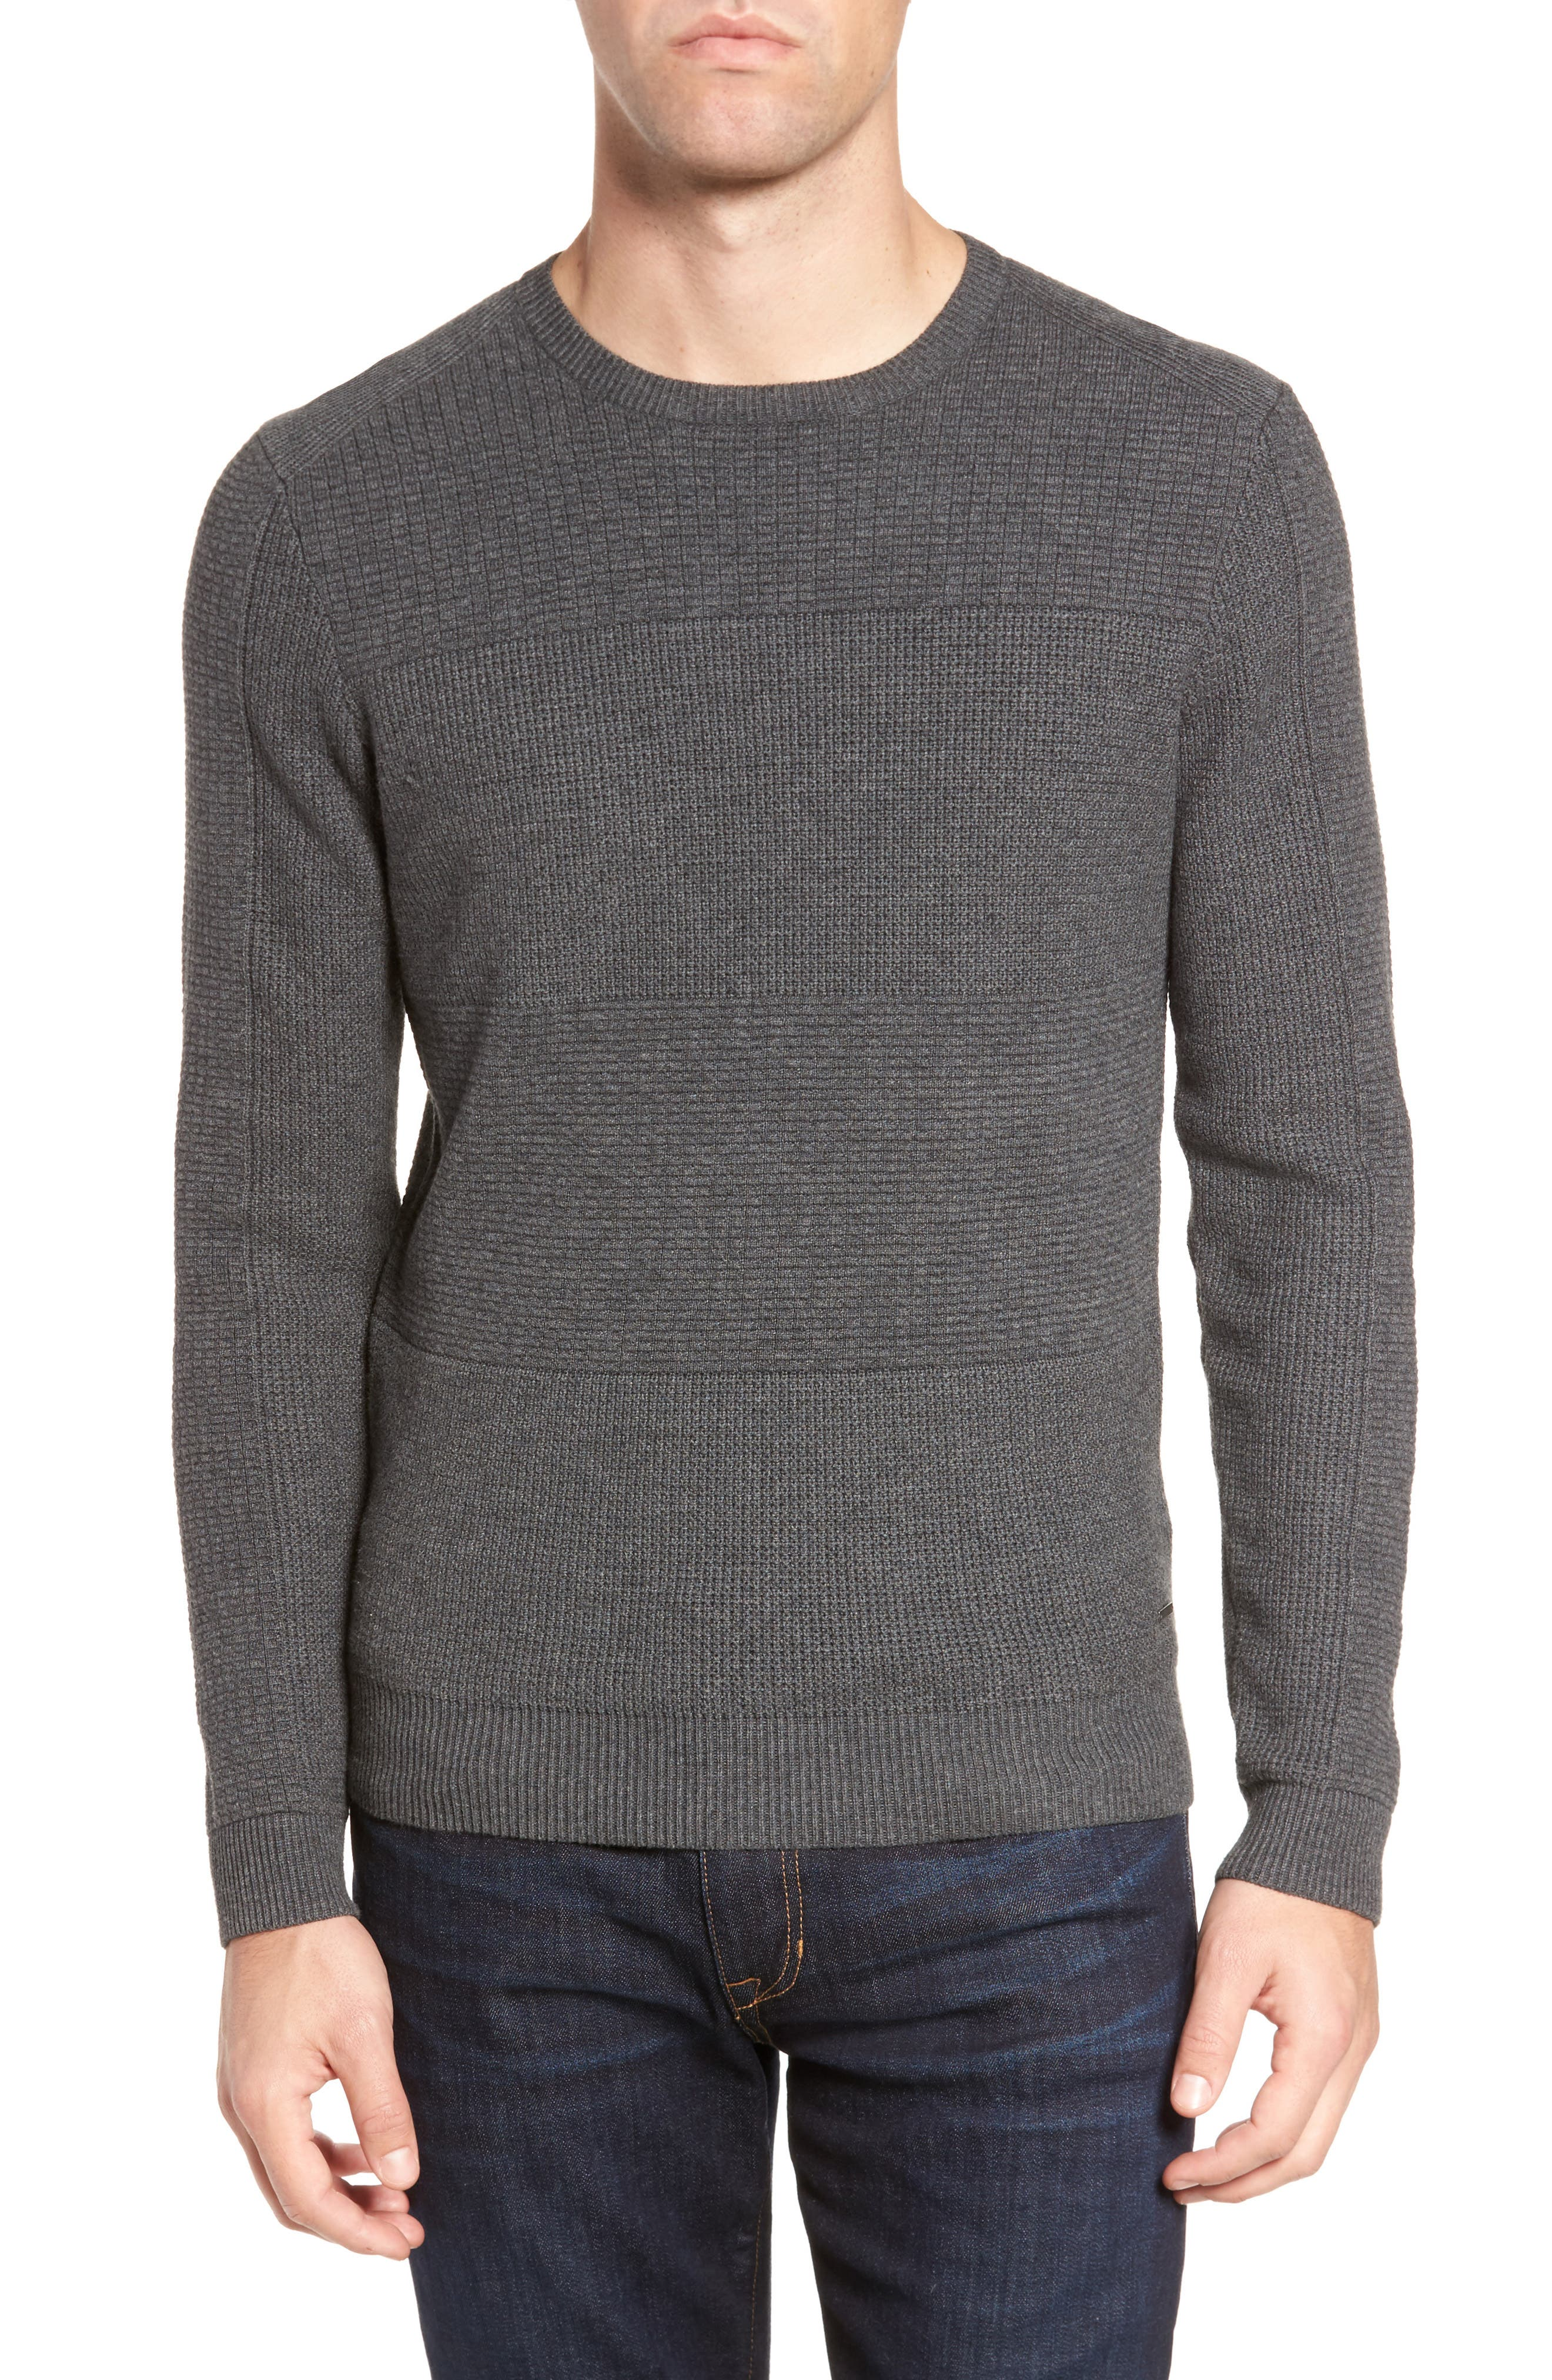 Naranjo Wool & Cotton Sweater,                         Main,                         color, Grey